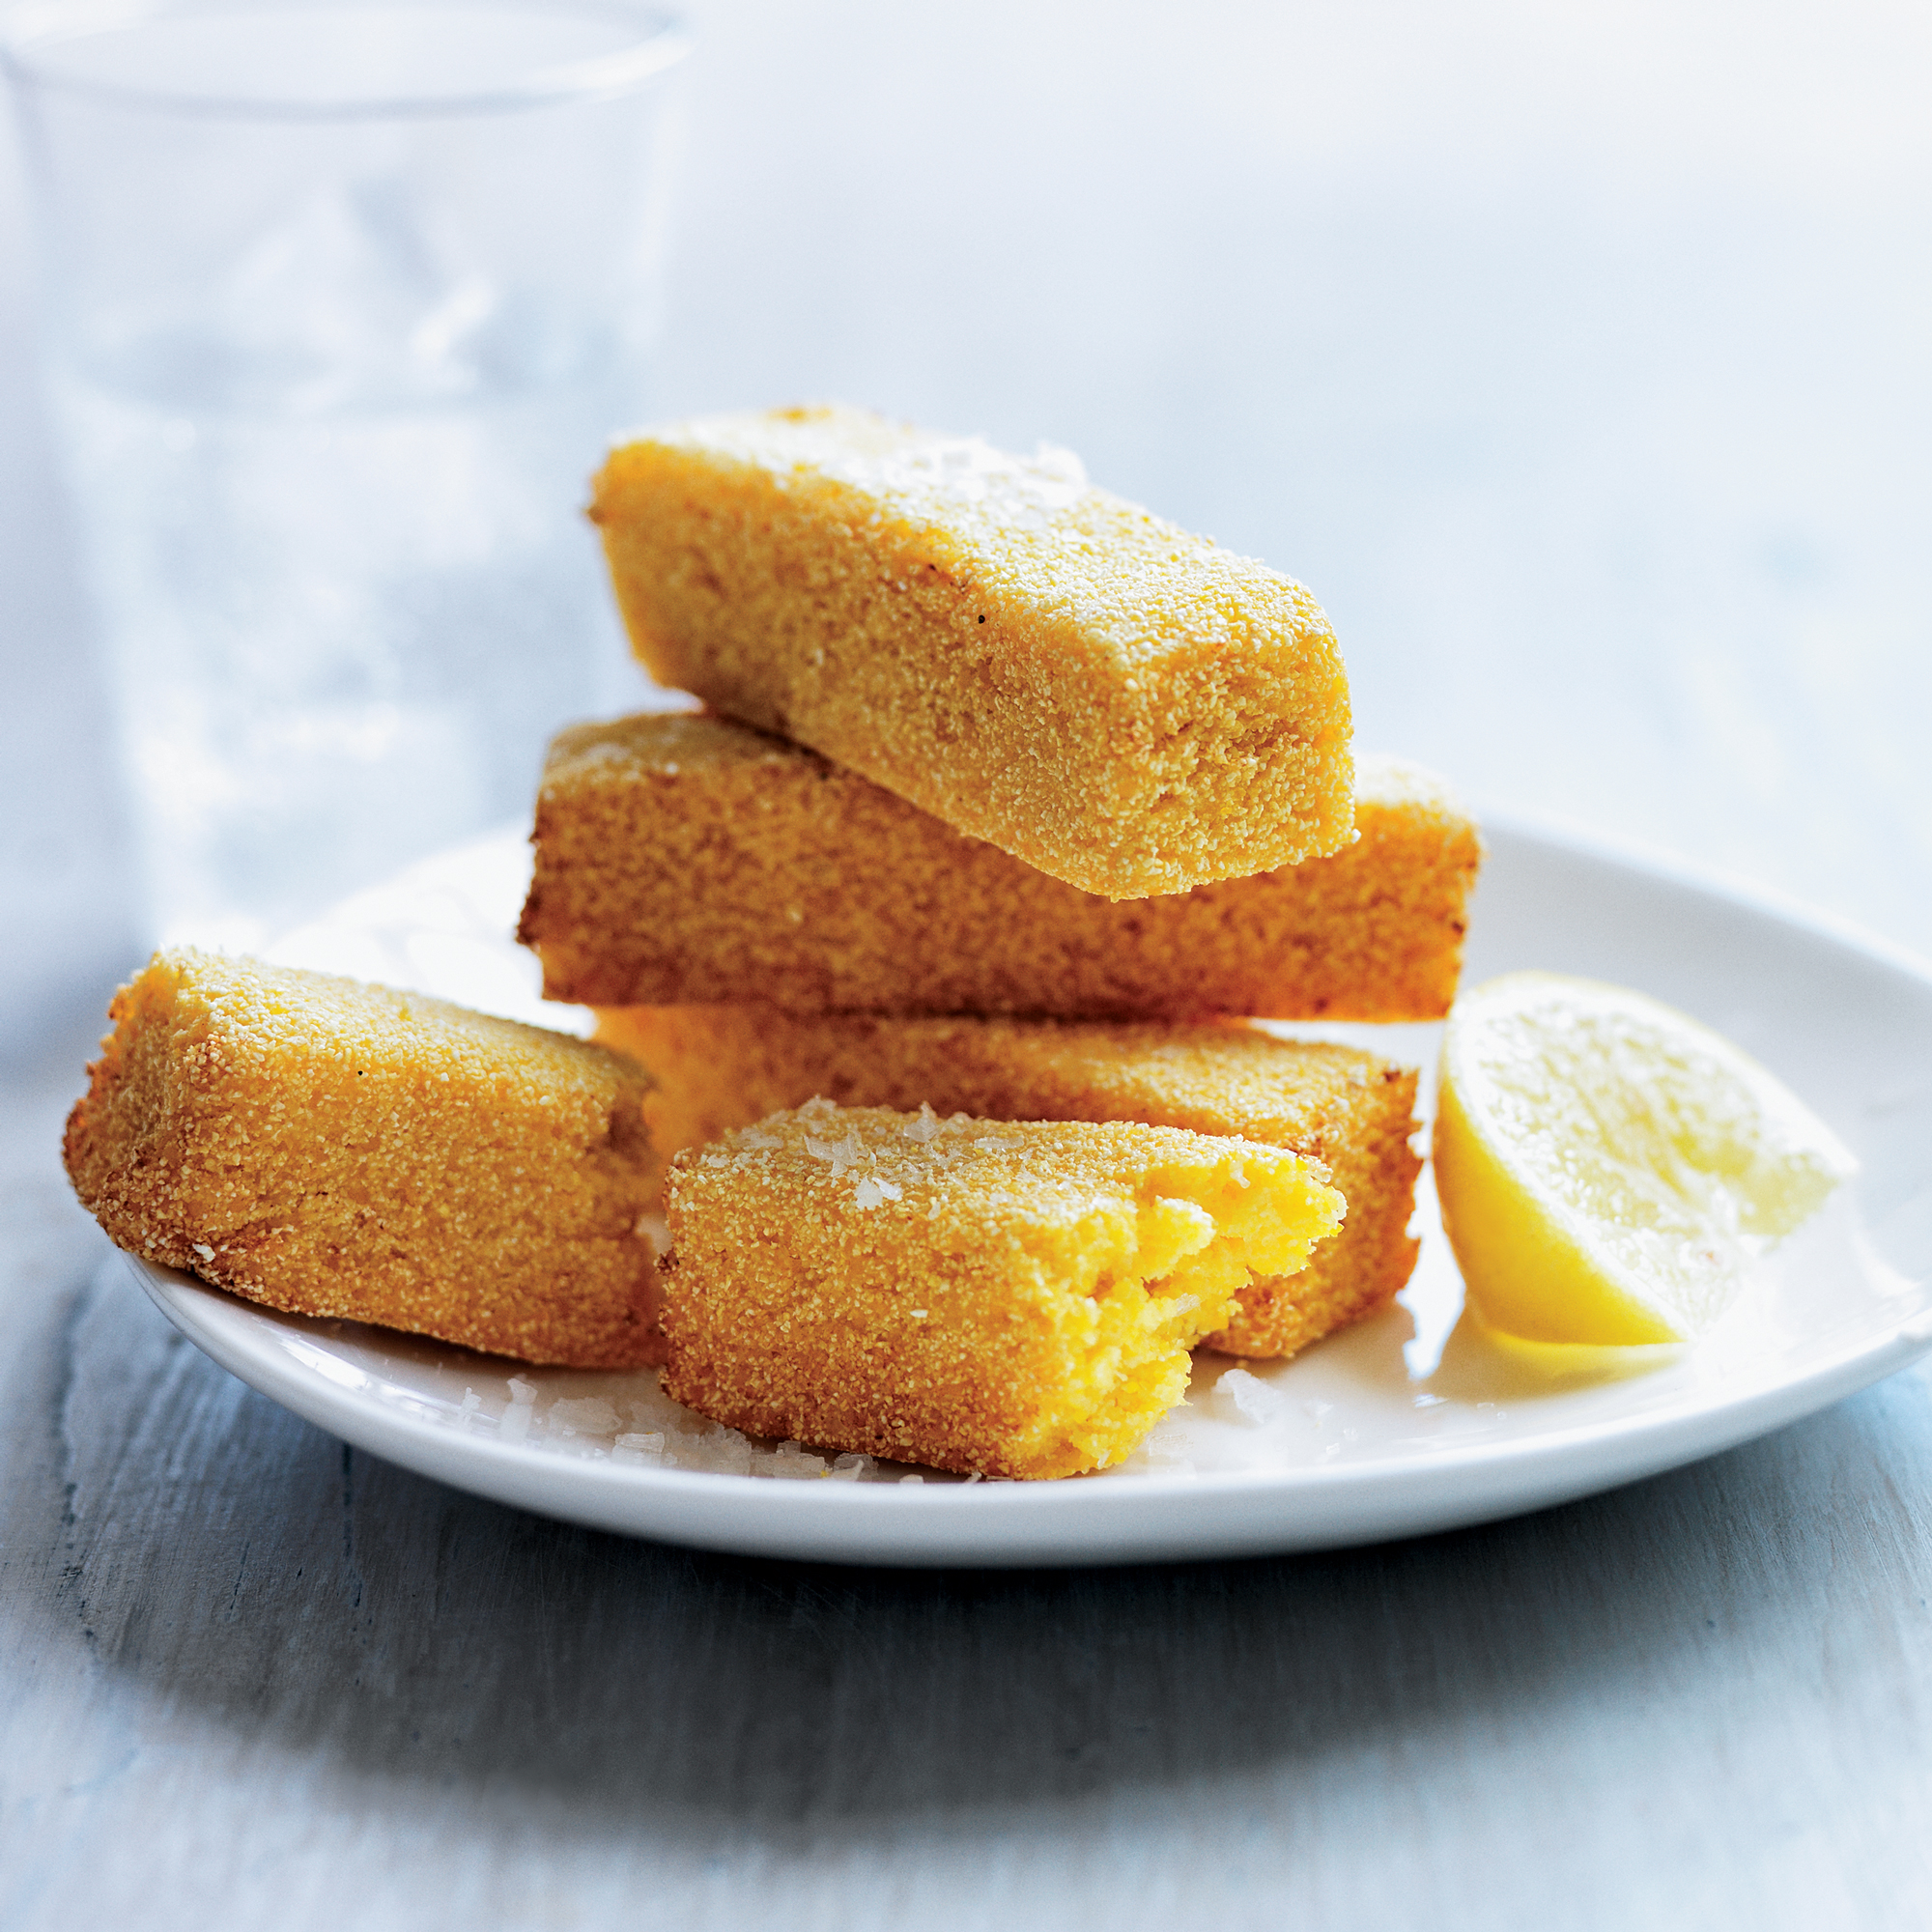 Deep-fried polenta recipe by Wylie Dufresne